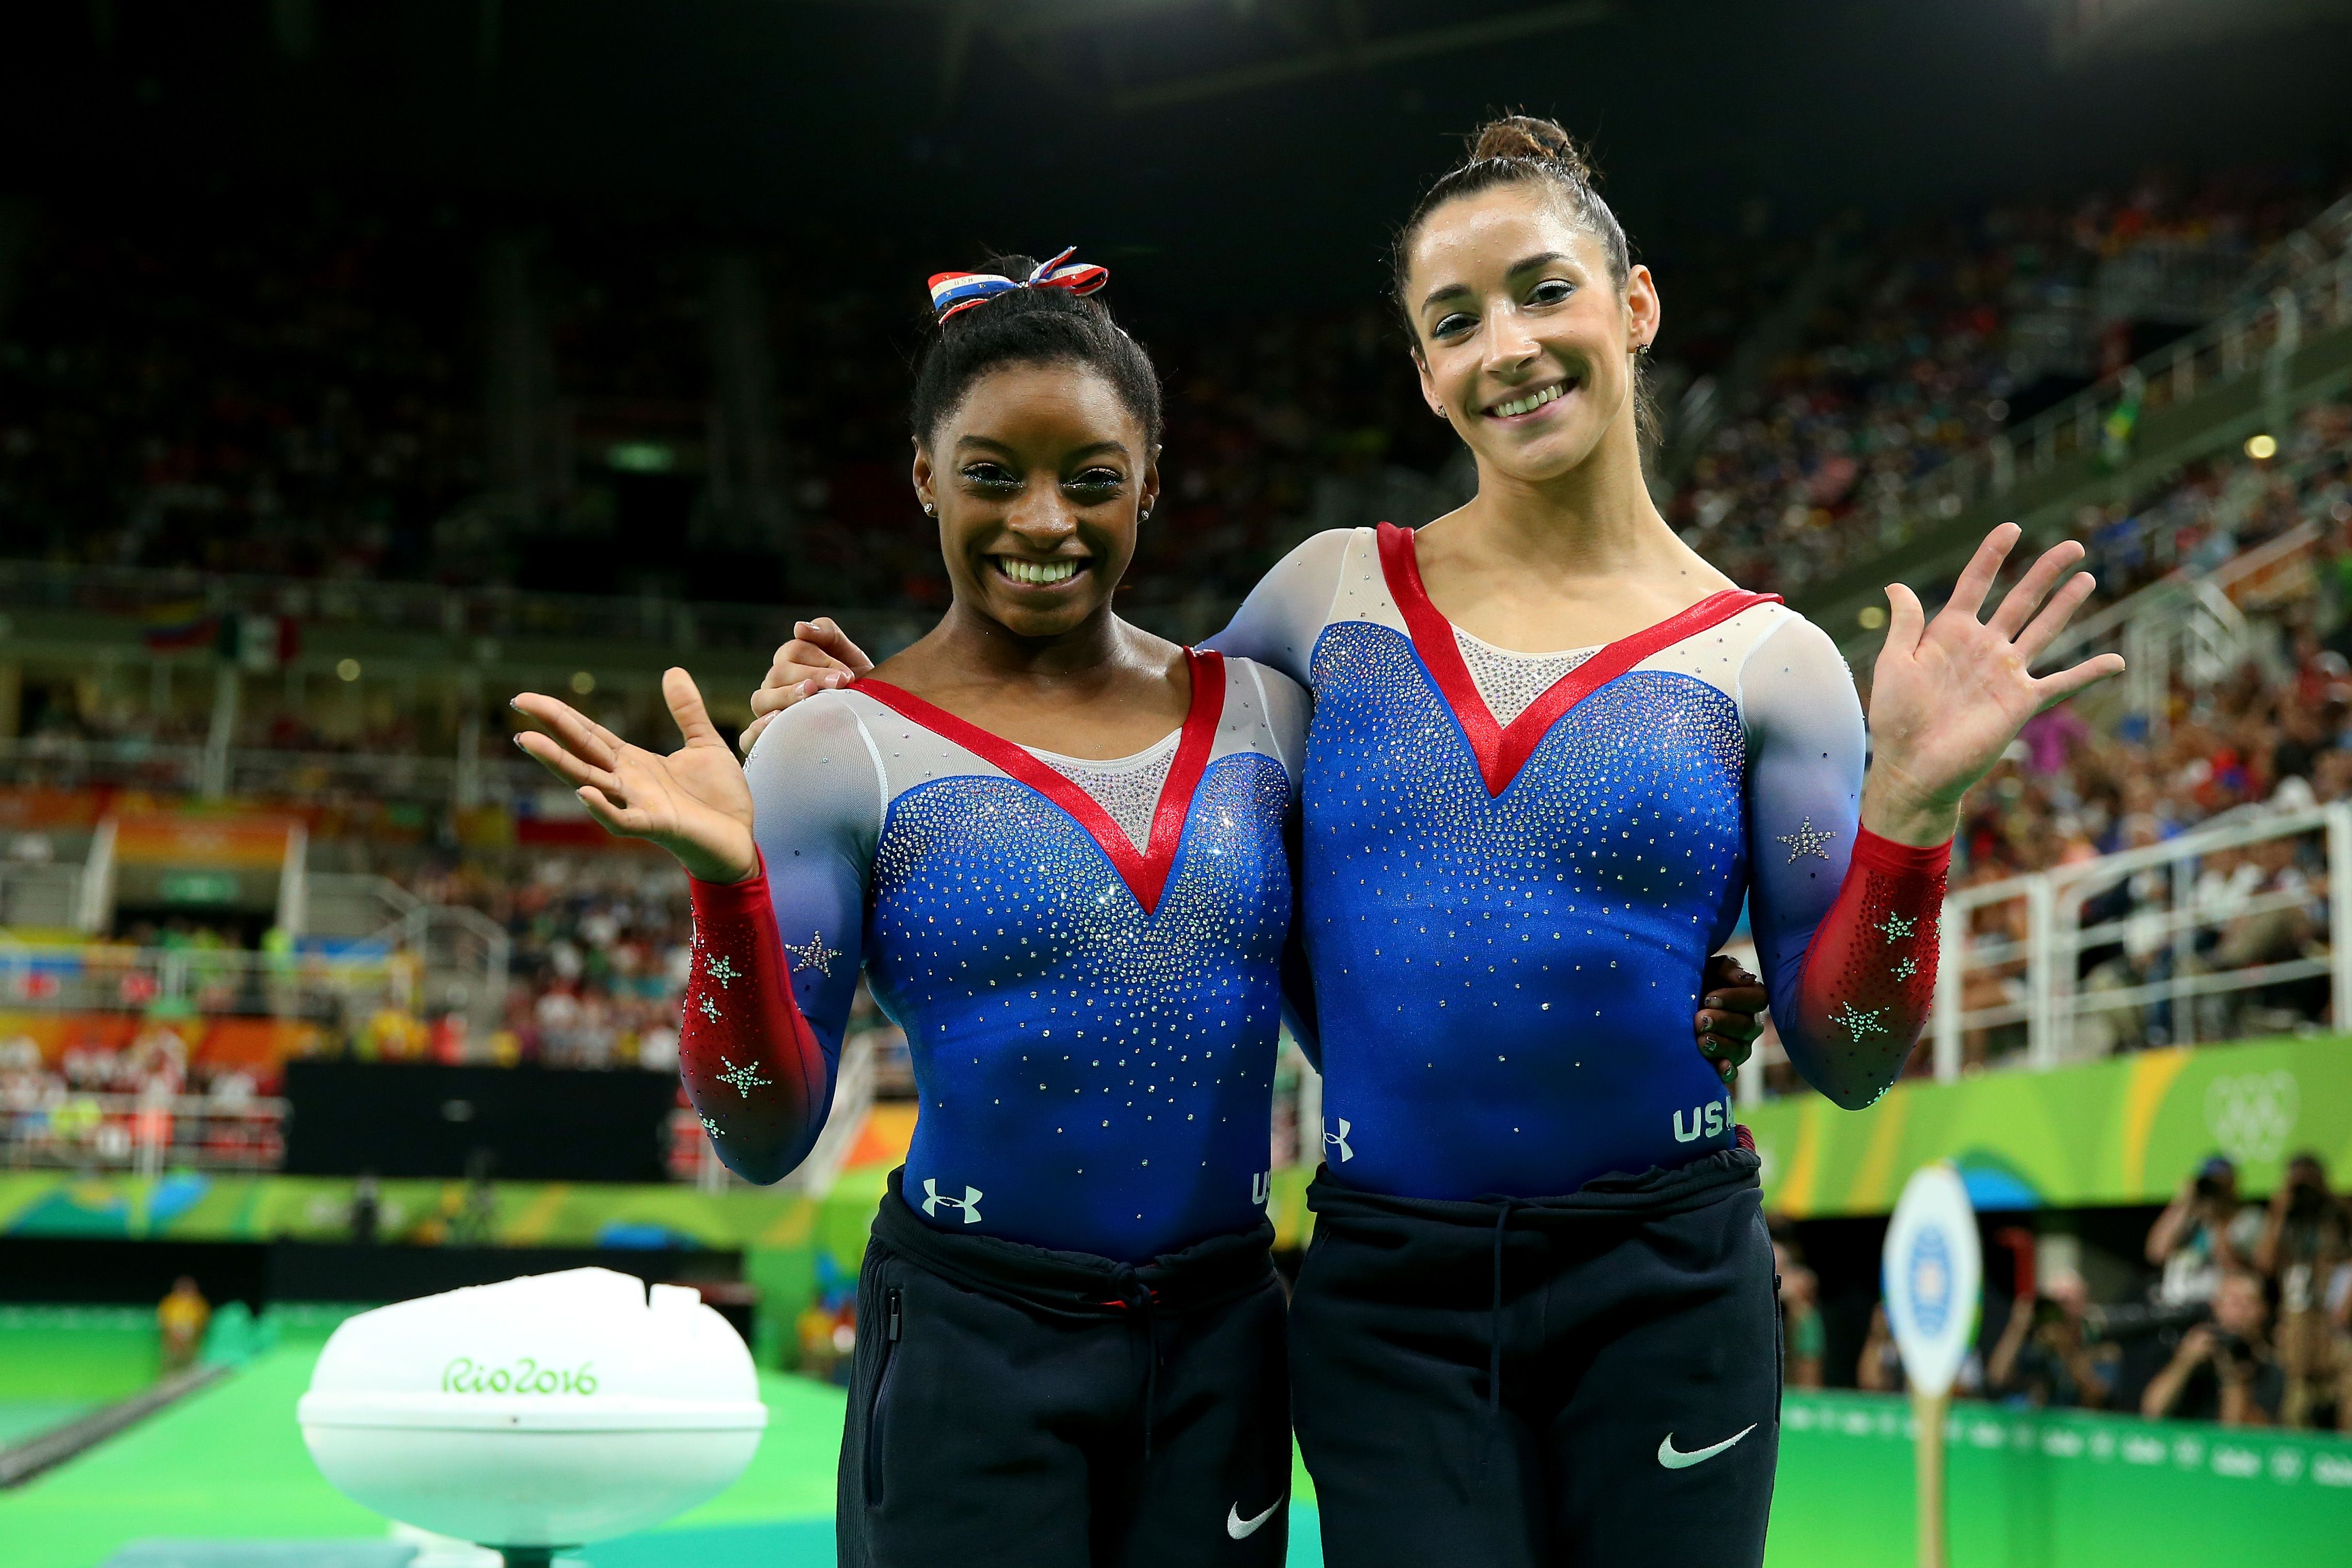 Simone Biles and Aly Raisman Pose for Sports Illustrated